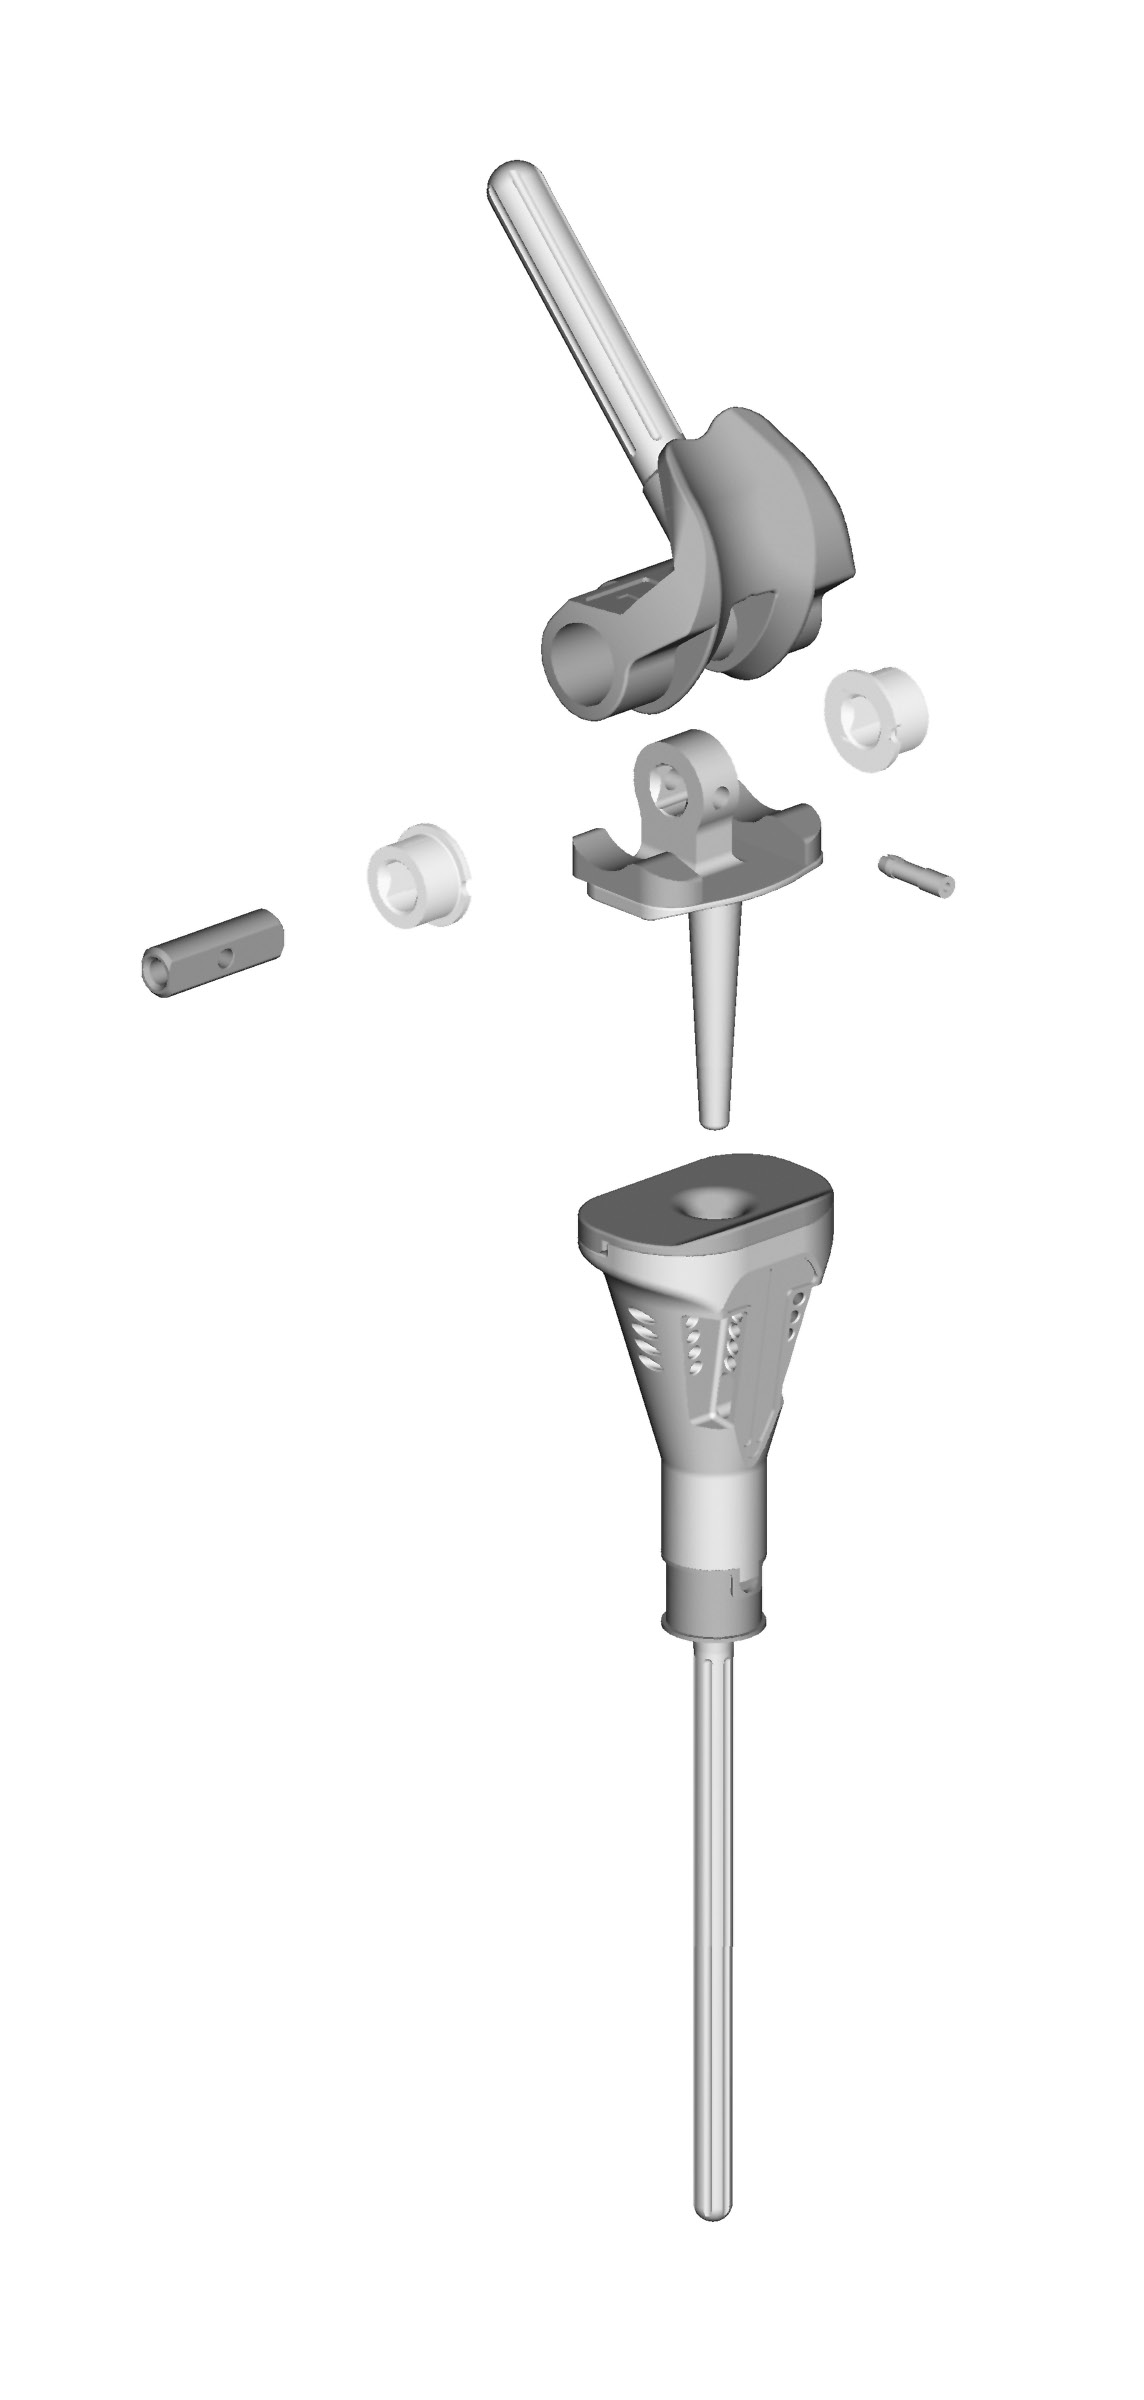 Please refer to Appendix D for additional information on patellar preparation. Medial Side Hinge Assembly Fig. 65 Hinge Components There are two hinges in the MOST Options system.